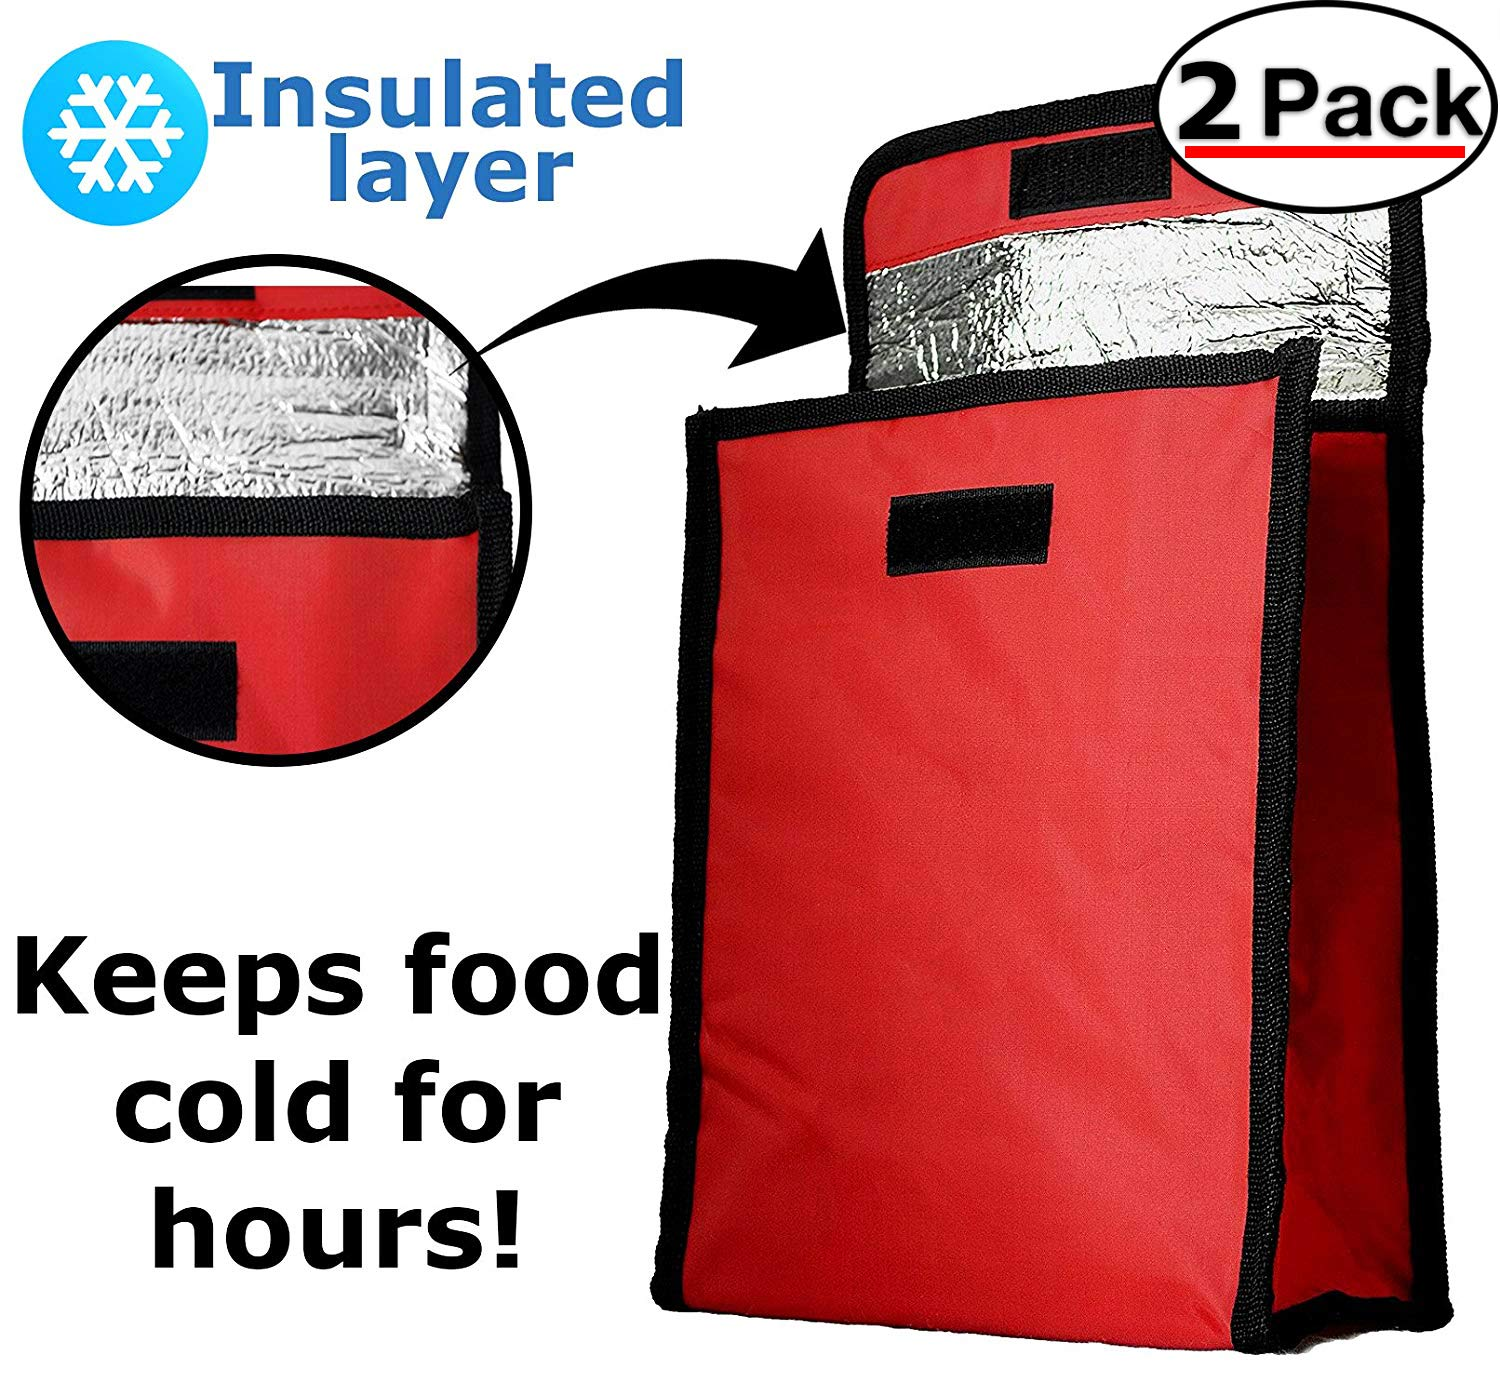 d7e0ff5d92bd Insulated Lunch Tote Bag - Roll Top Lunchbox Fits in a Backpack ...